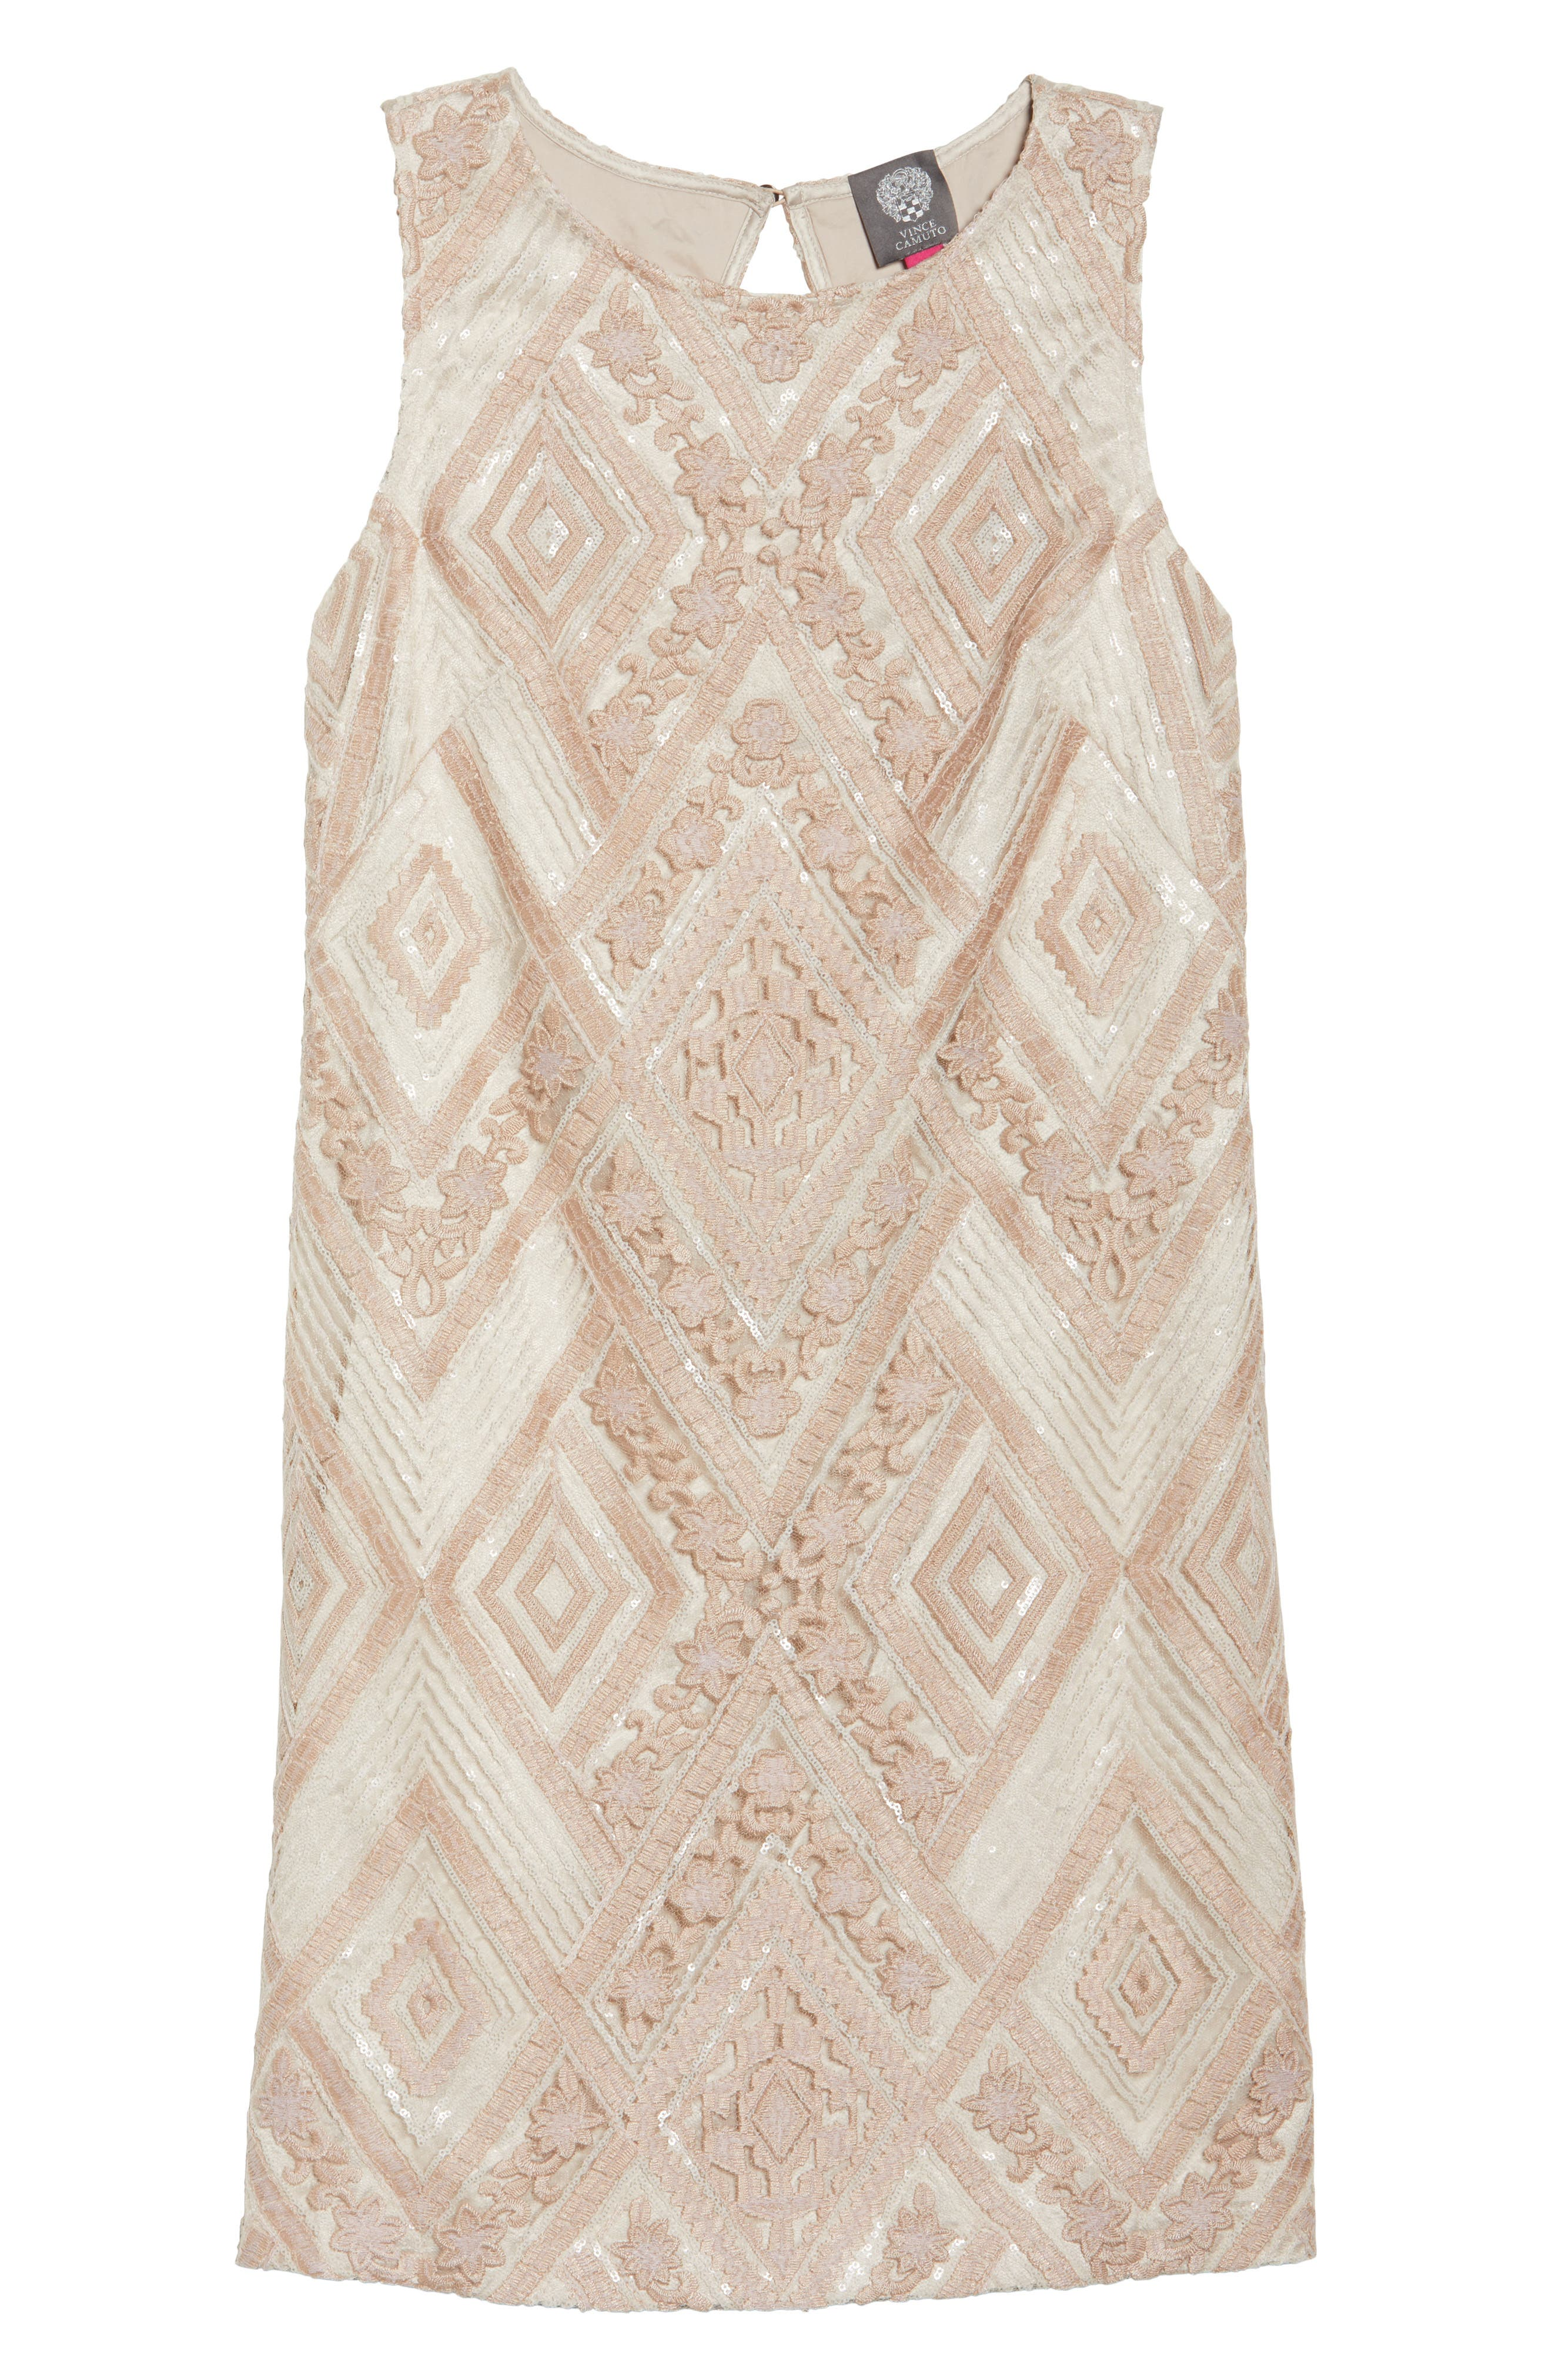 Sequin Embroidered Sheath Dress,                             Alternate thumbnail 6, color,                             Blush